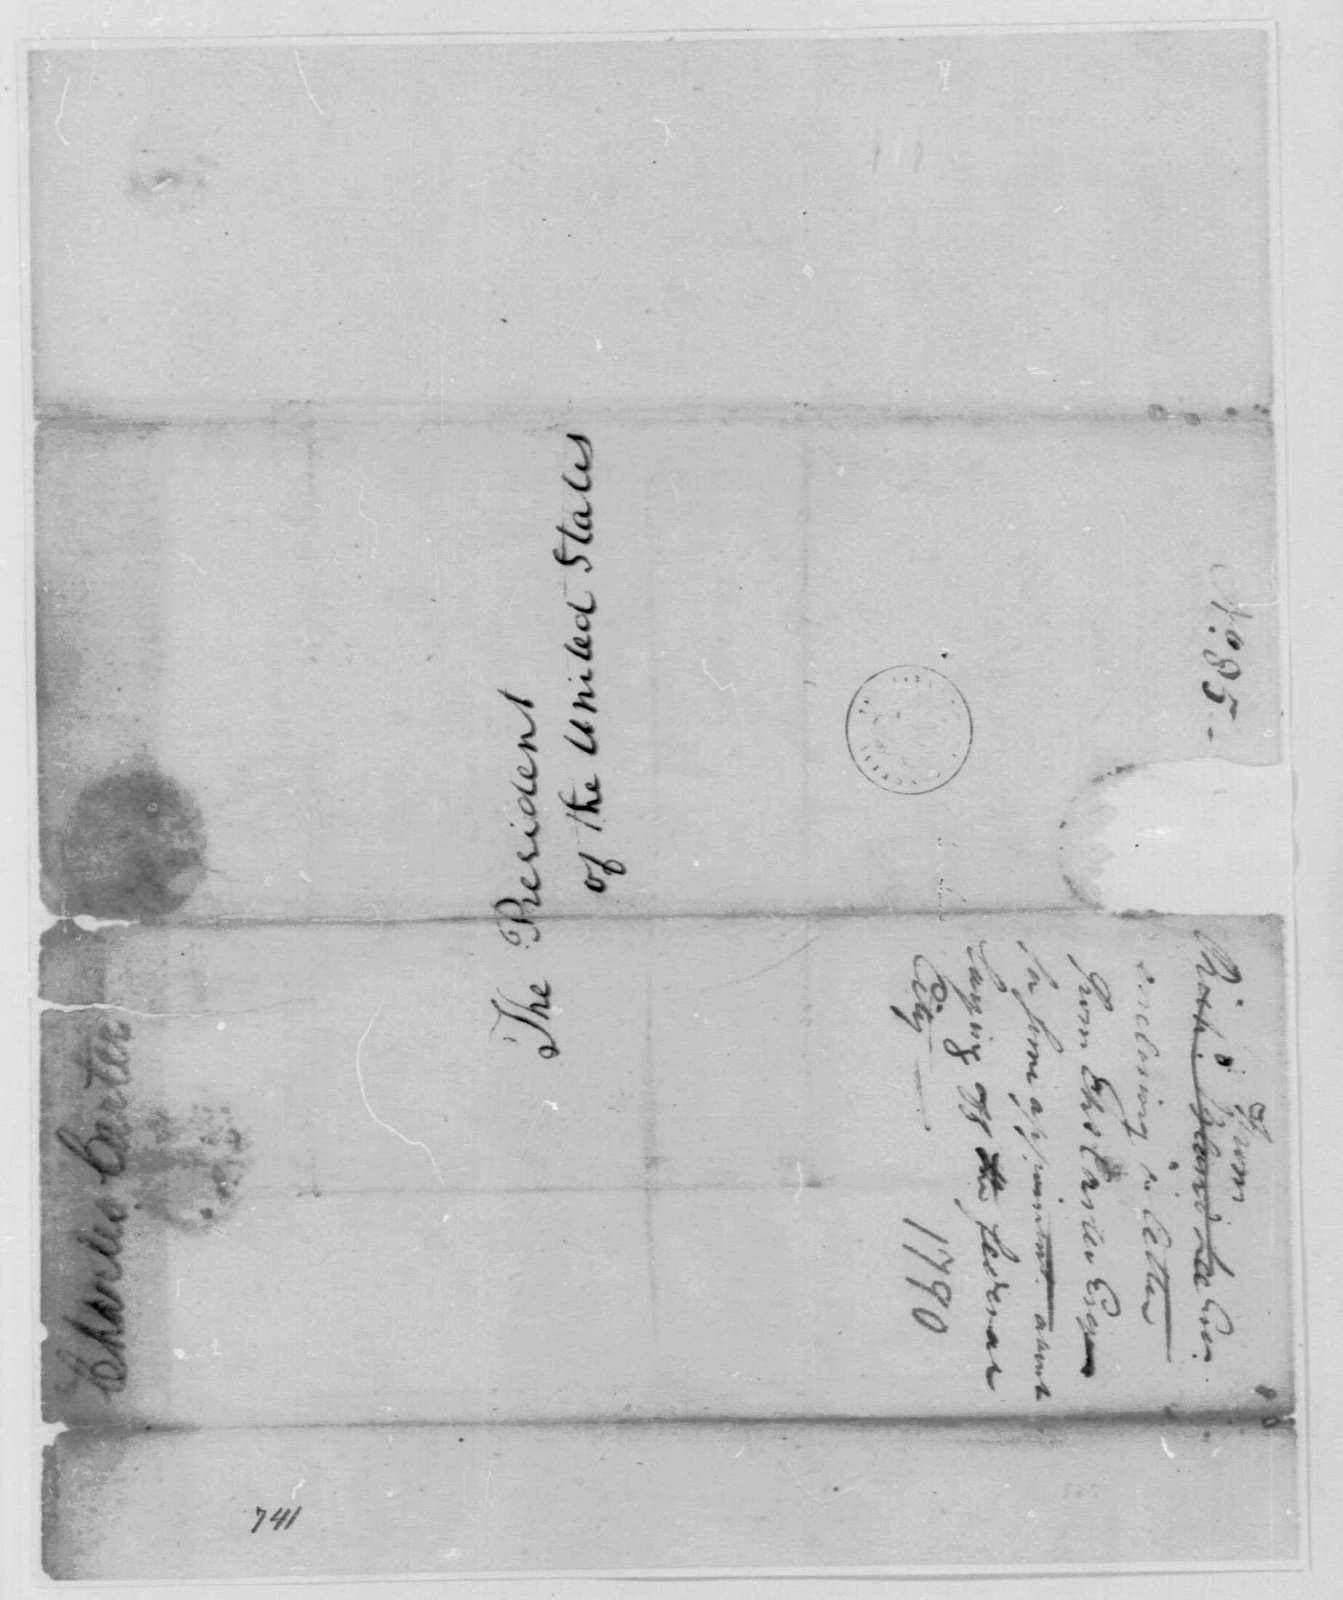 George Washington Papers, Series 7, Applications for Office, 1789-1796: Charles Carter